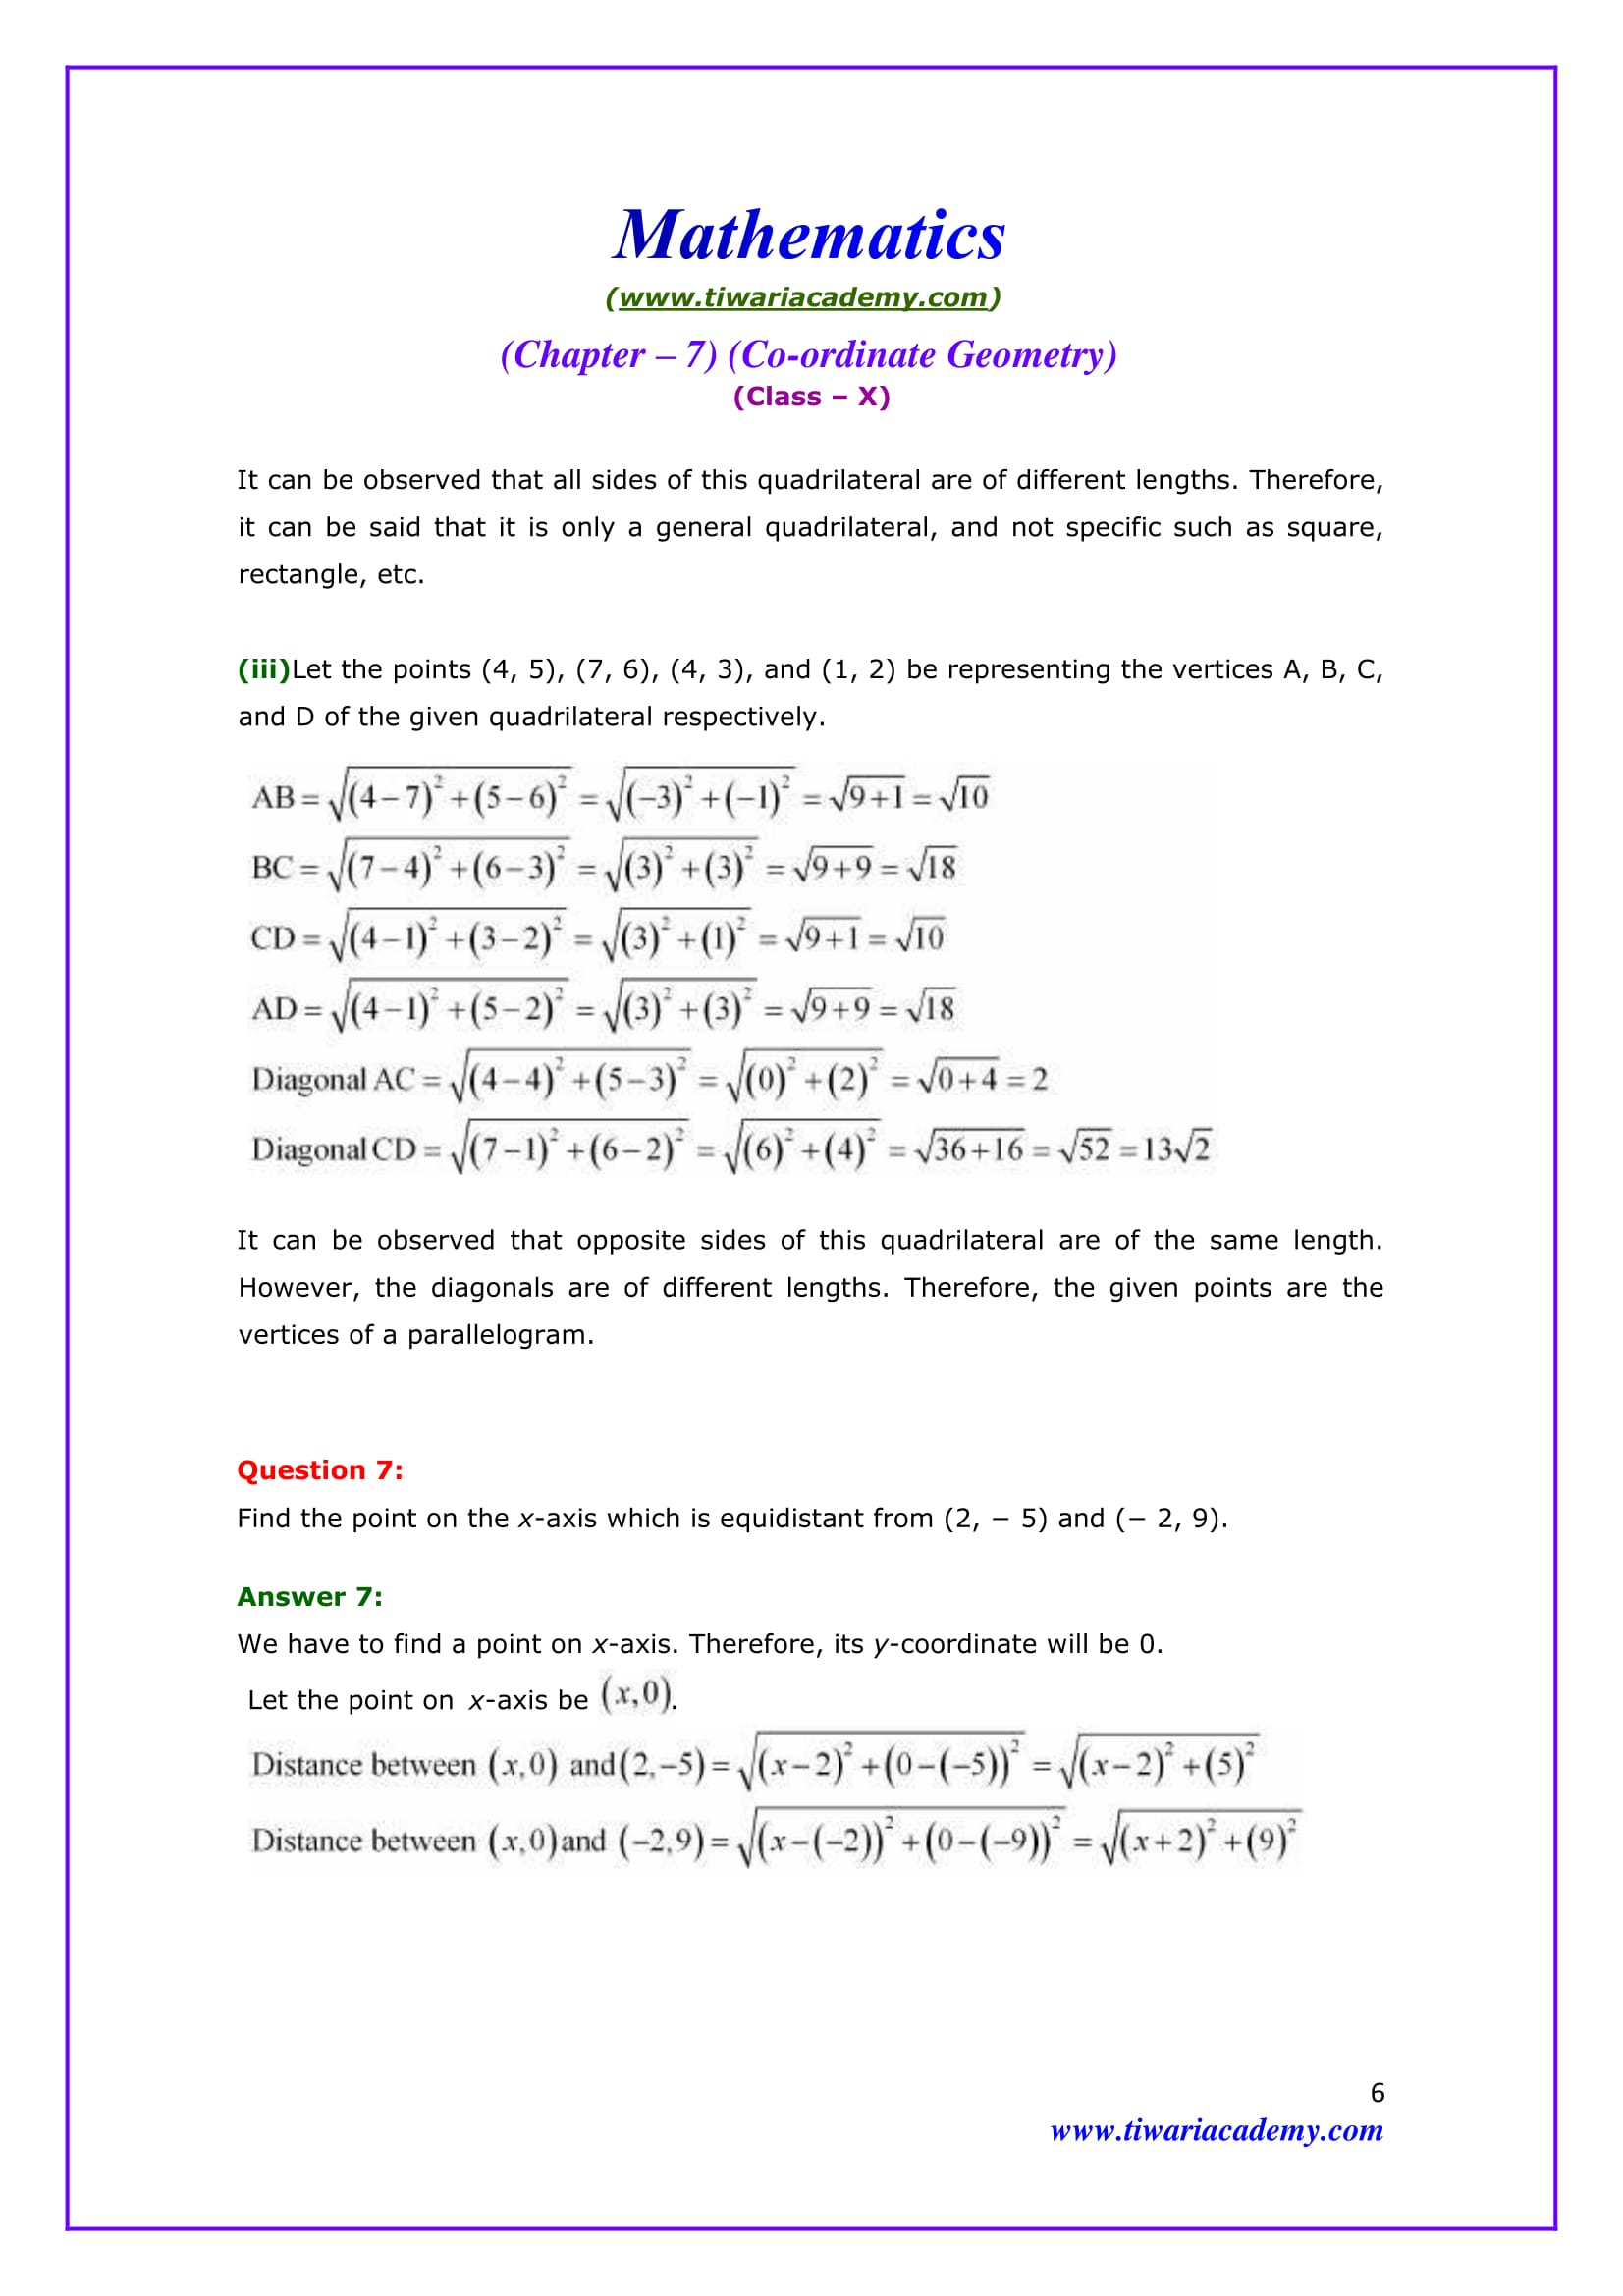 NCERT Solutions for Class 10 Maths Chapter 7 Exercise 7.1 Question 7